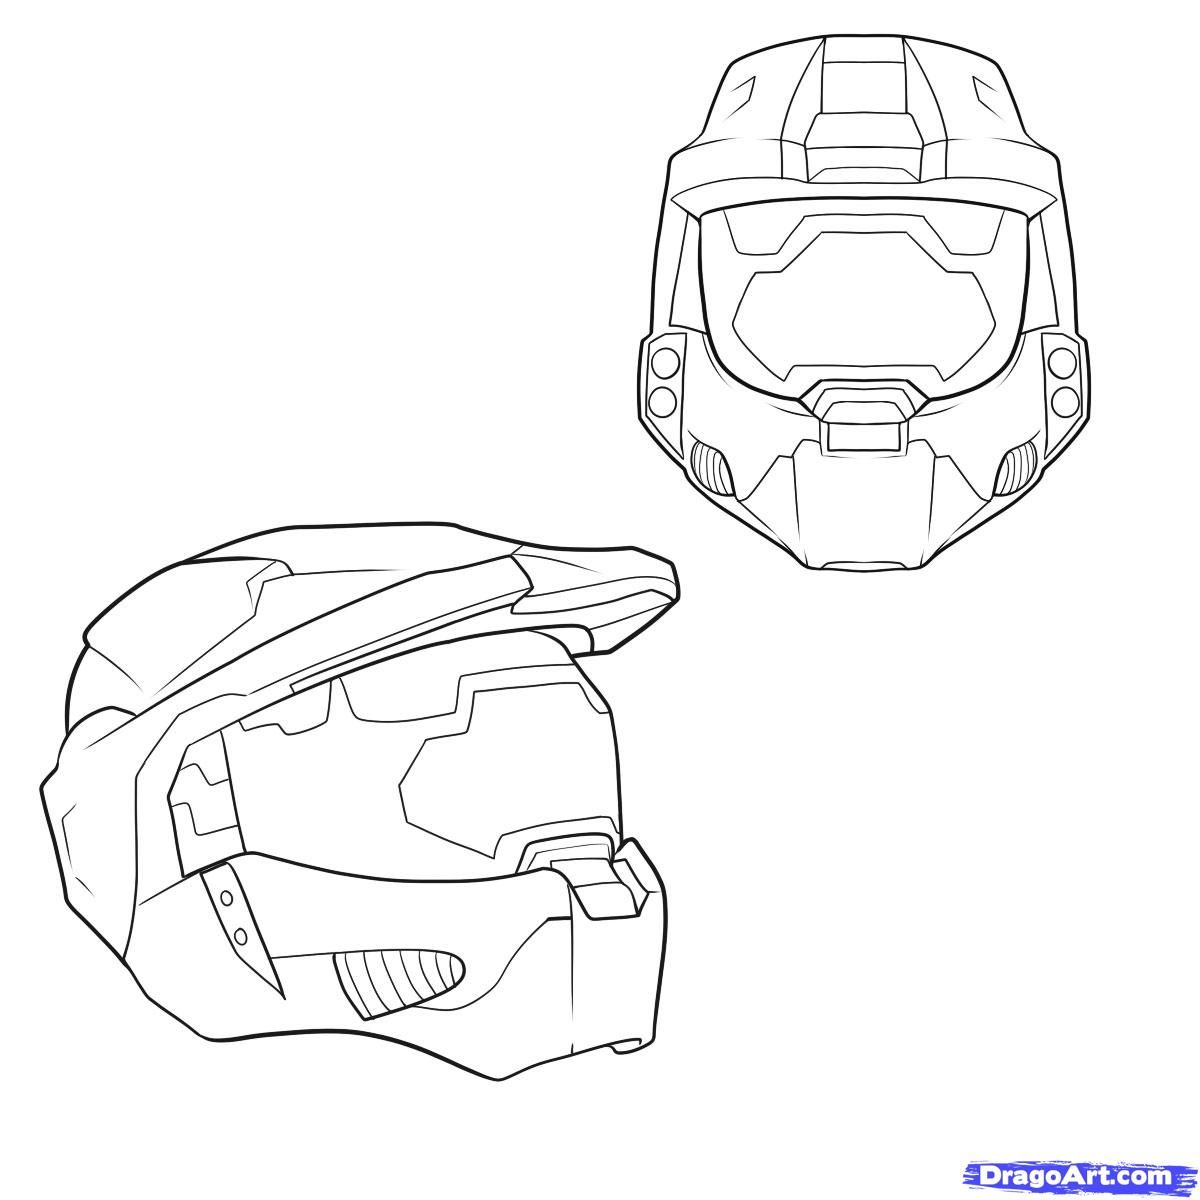 How To Draw A Halo Helmet Step By Step Video Game